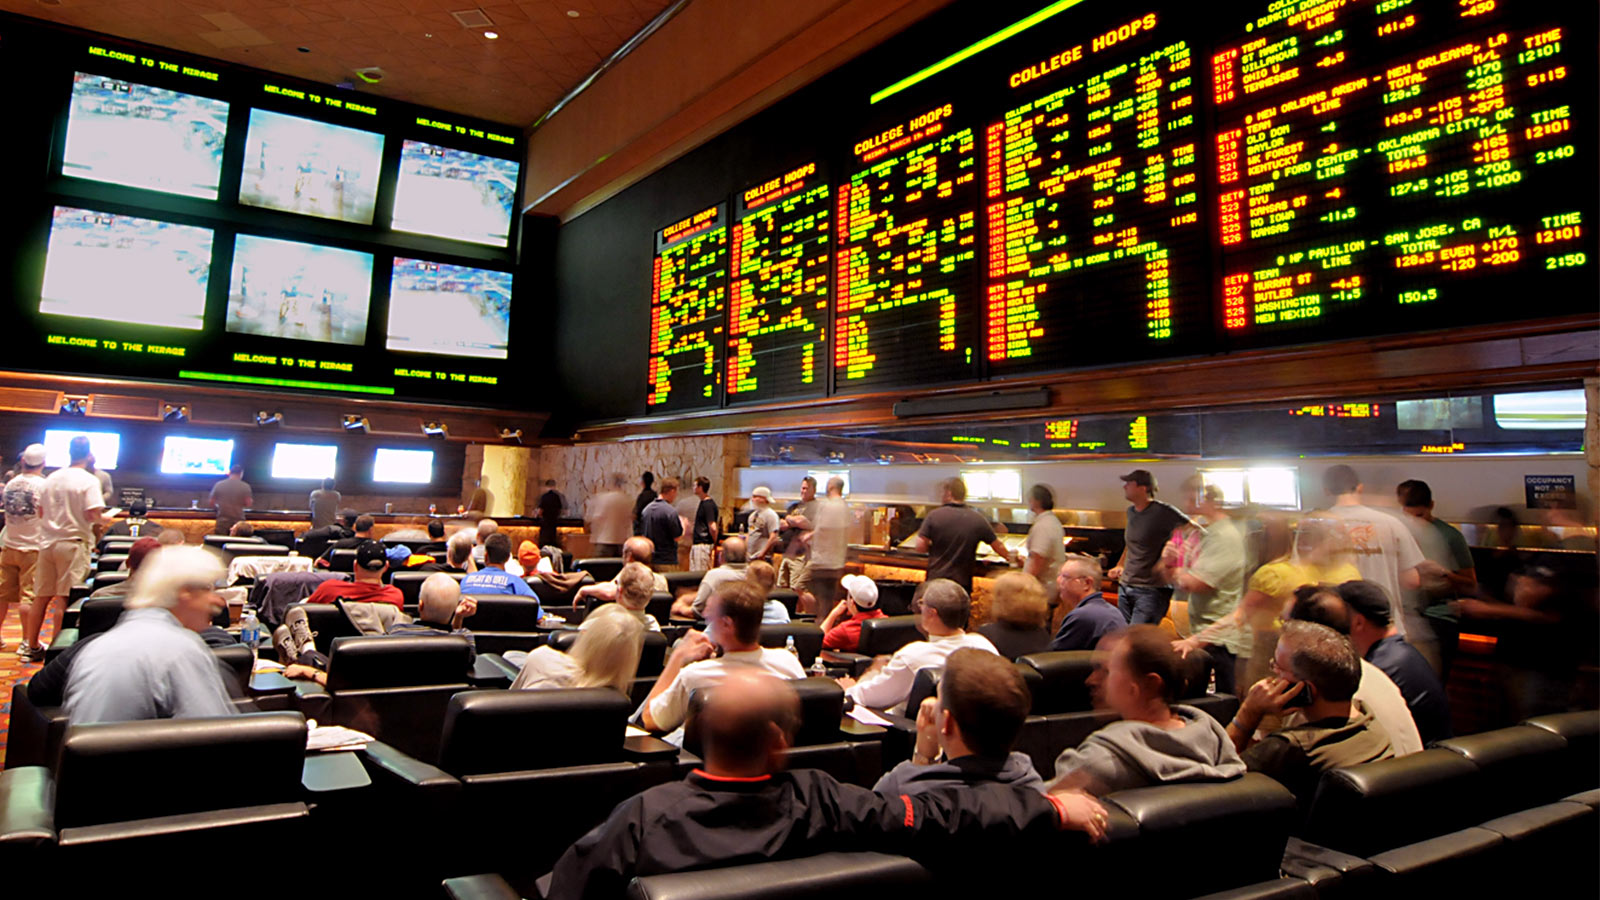 college sports game las vegas nfl point spreads